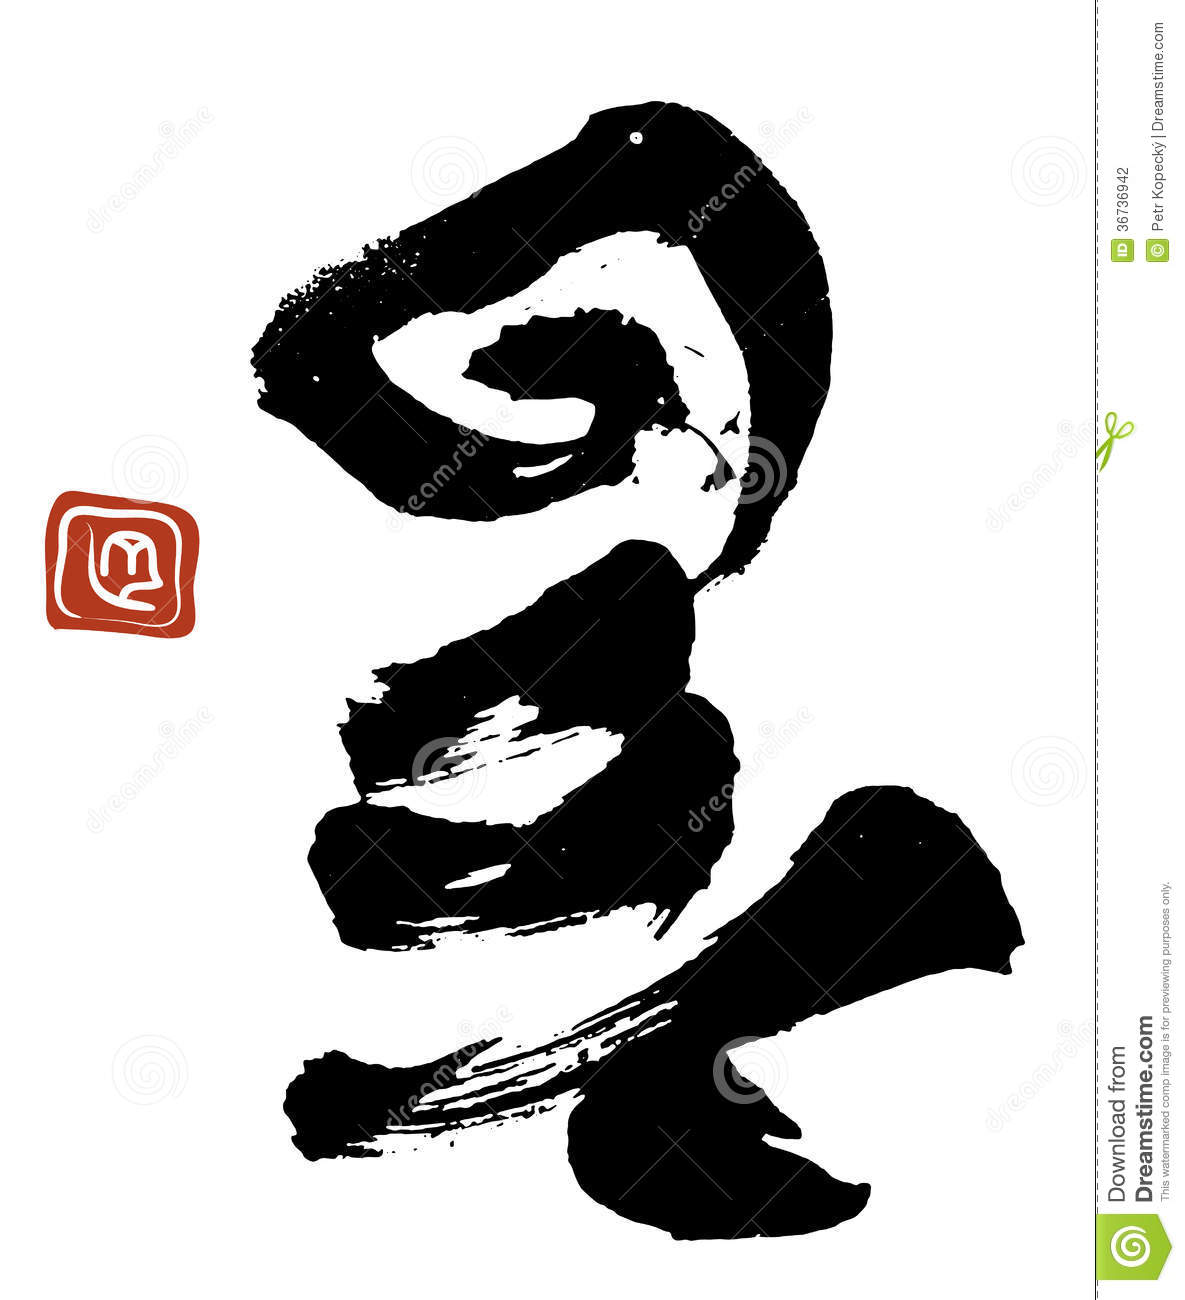 Calligraphie japonaise photographie stock image